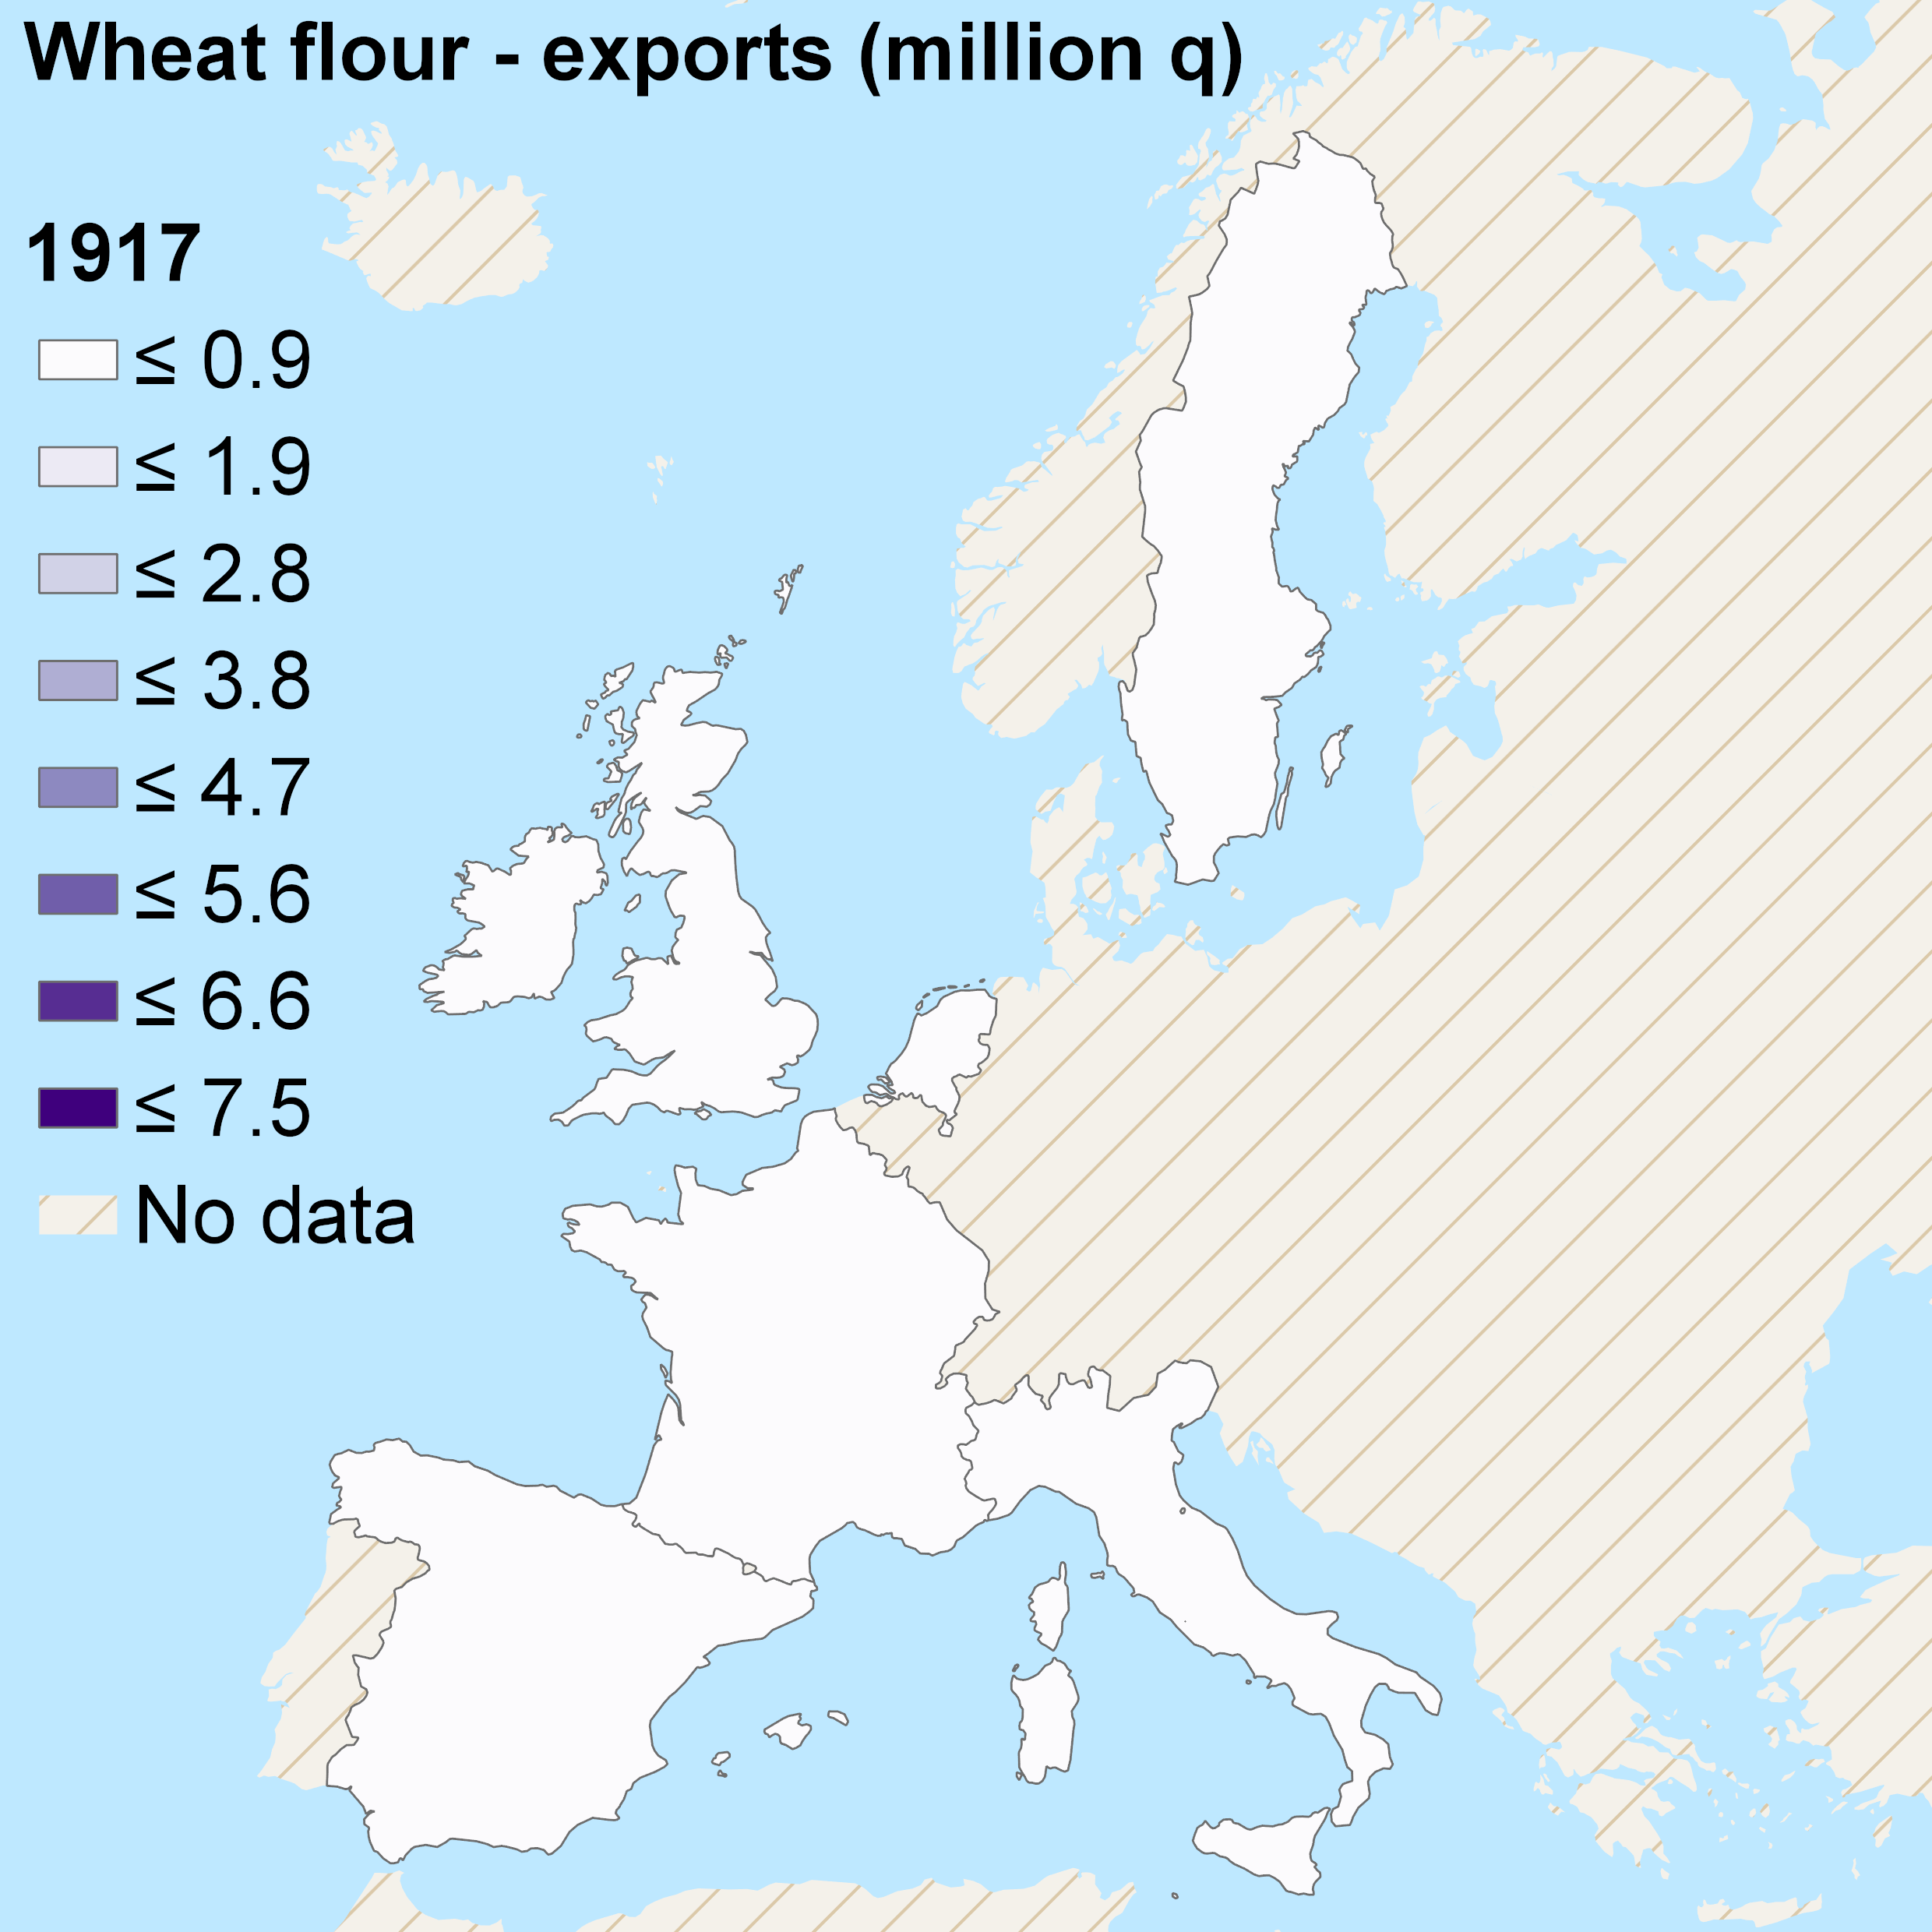 wheat-flour-exports-1917-v2